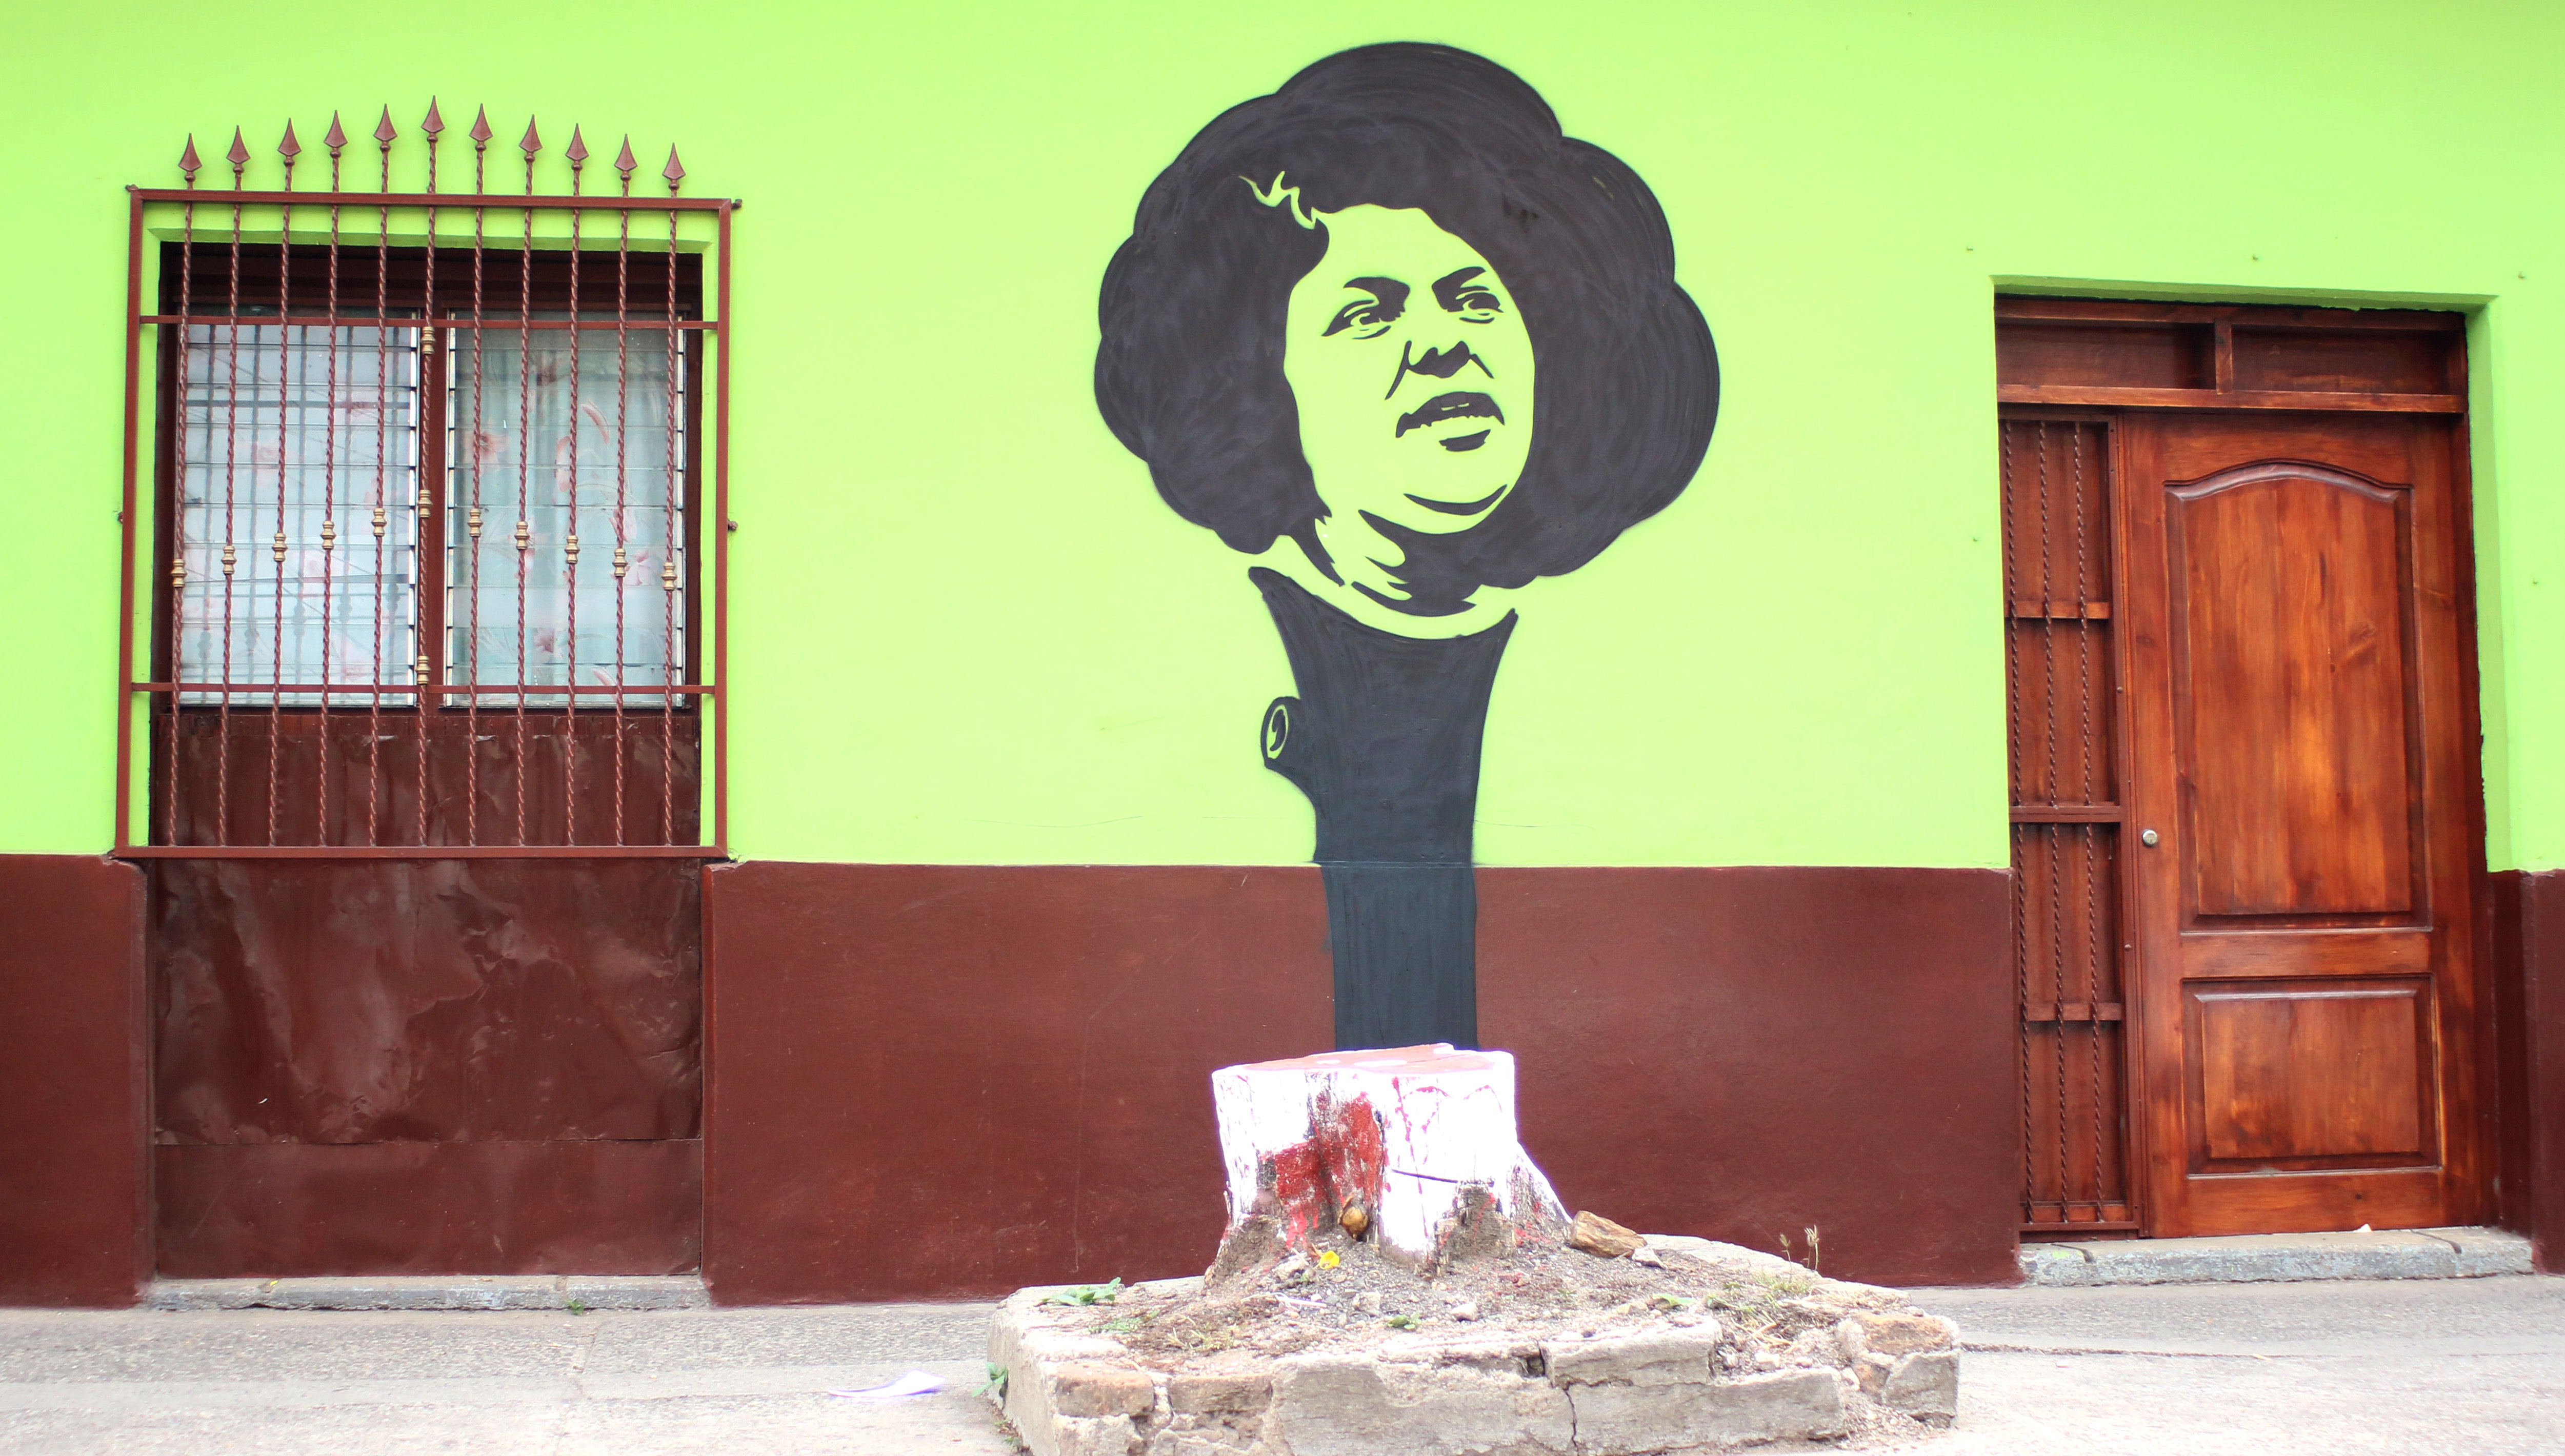 Maeztro Urbano, a street artist from Honduras, painted this stencil of murdered Indigenous hero Berta Cáceres, which seems to grow out of the remains of a tree cut down to keep it away from electricity lines in Tegucigalpa. (Maeztro Urbano)